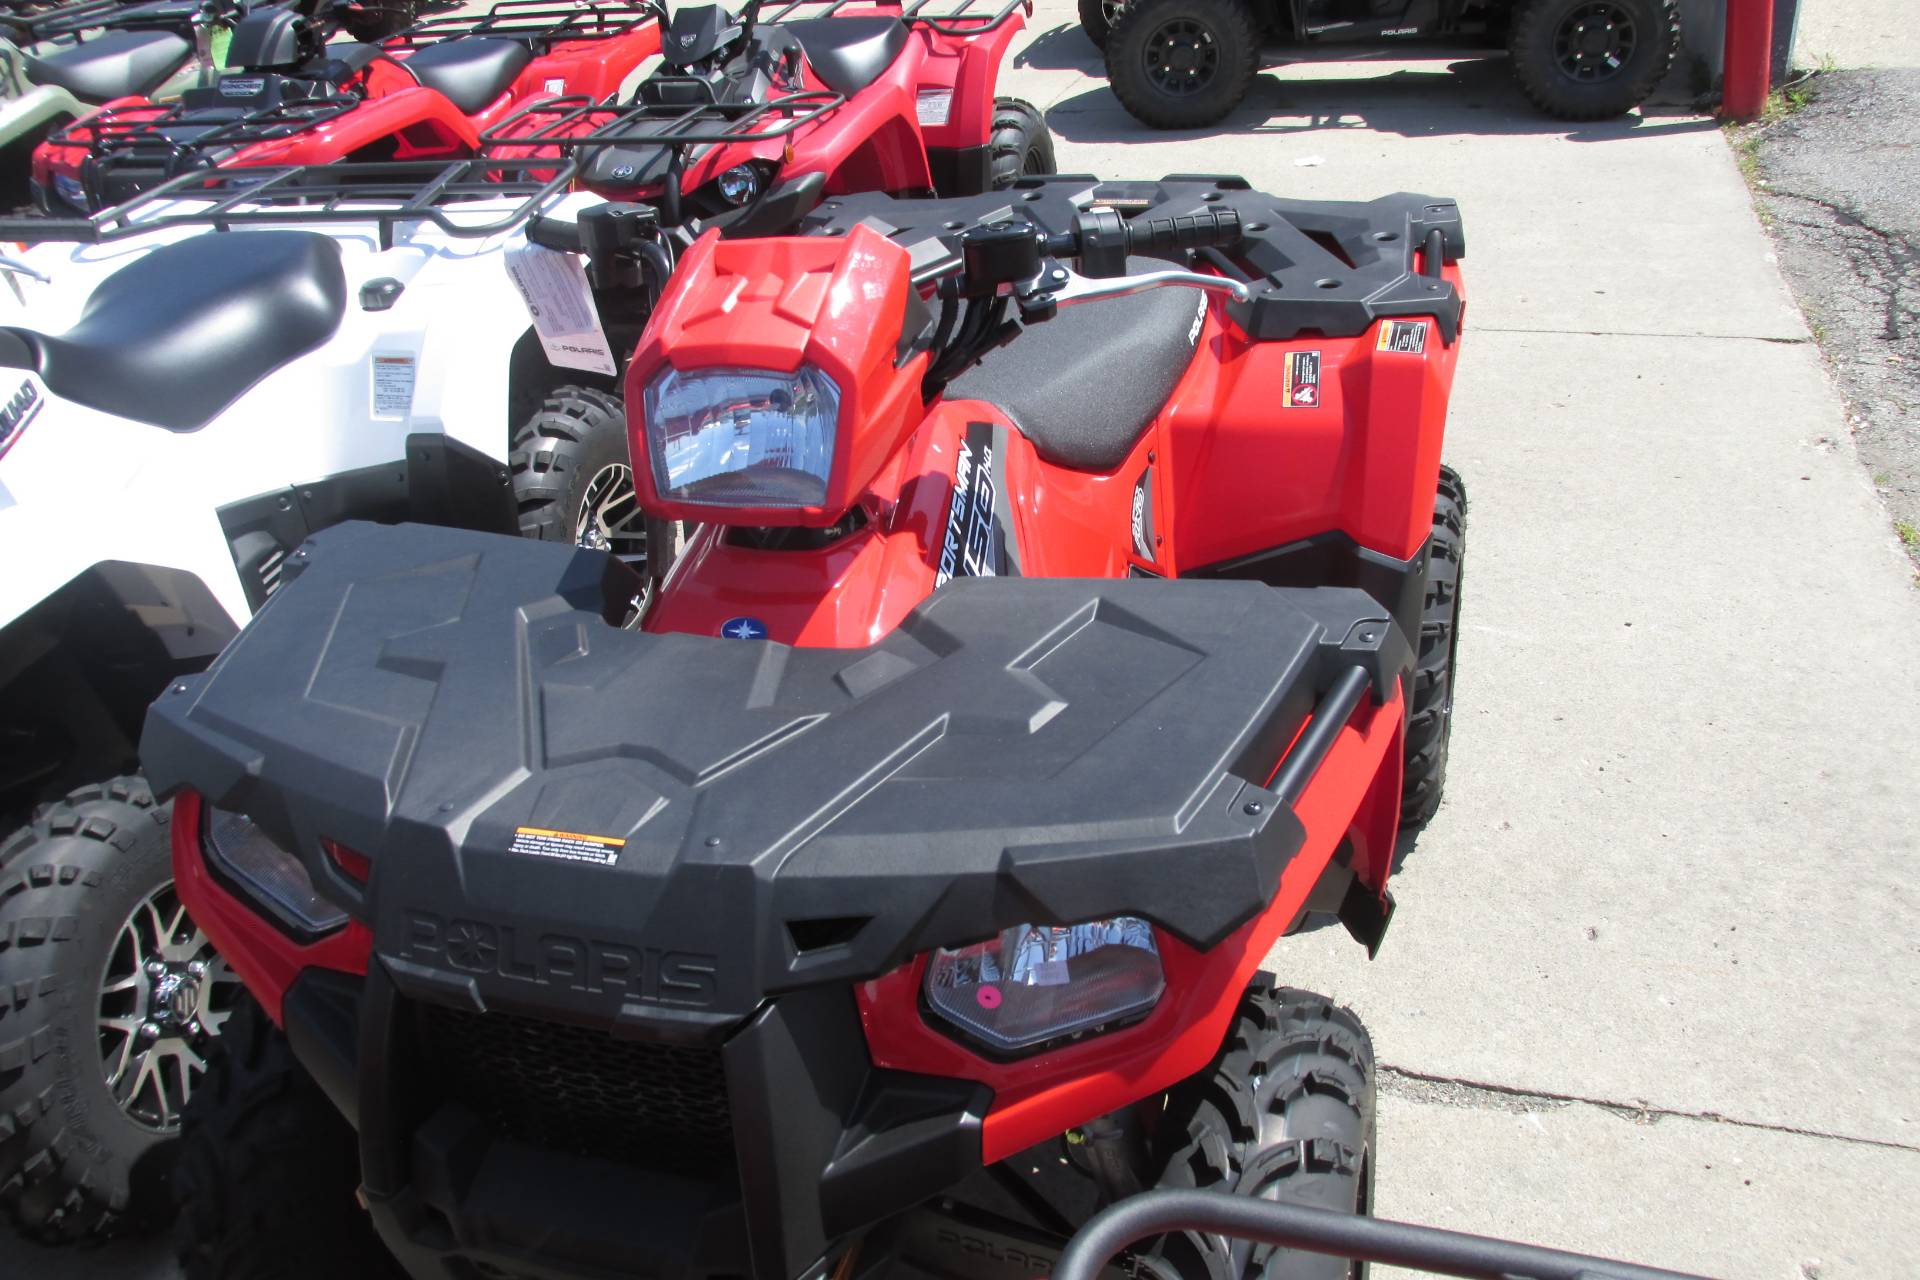 2019 Polaris SPORTSMAN 450 in Springfield, Ohio - Photo 3